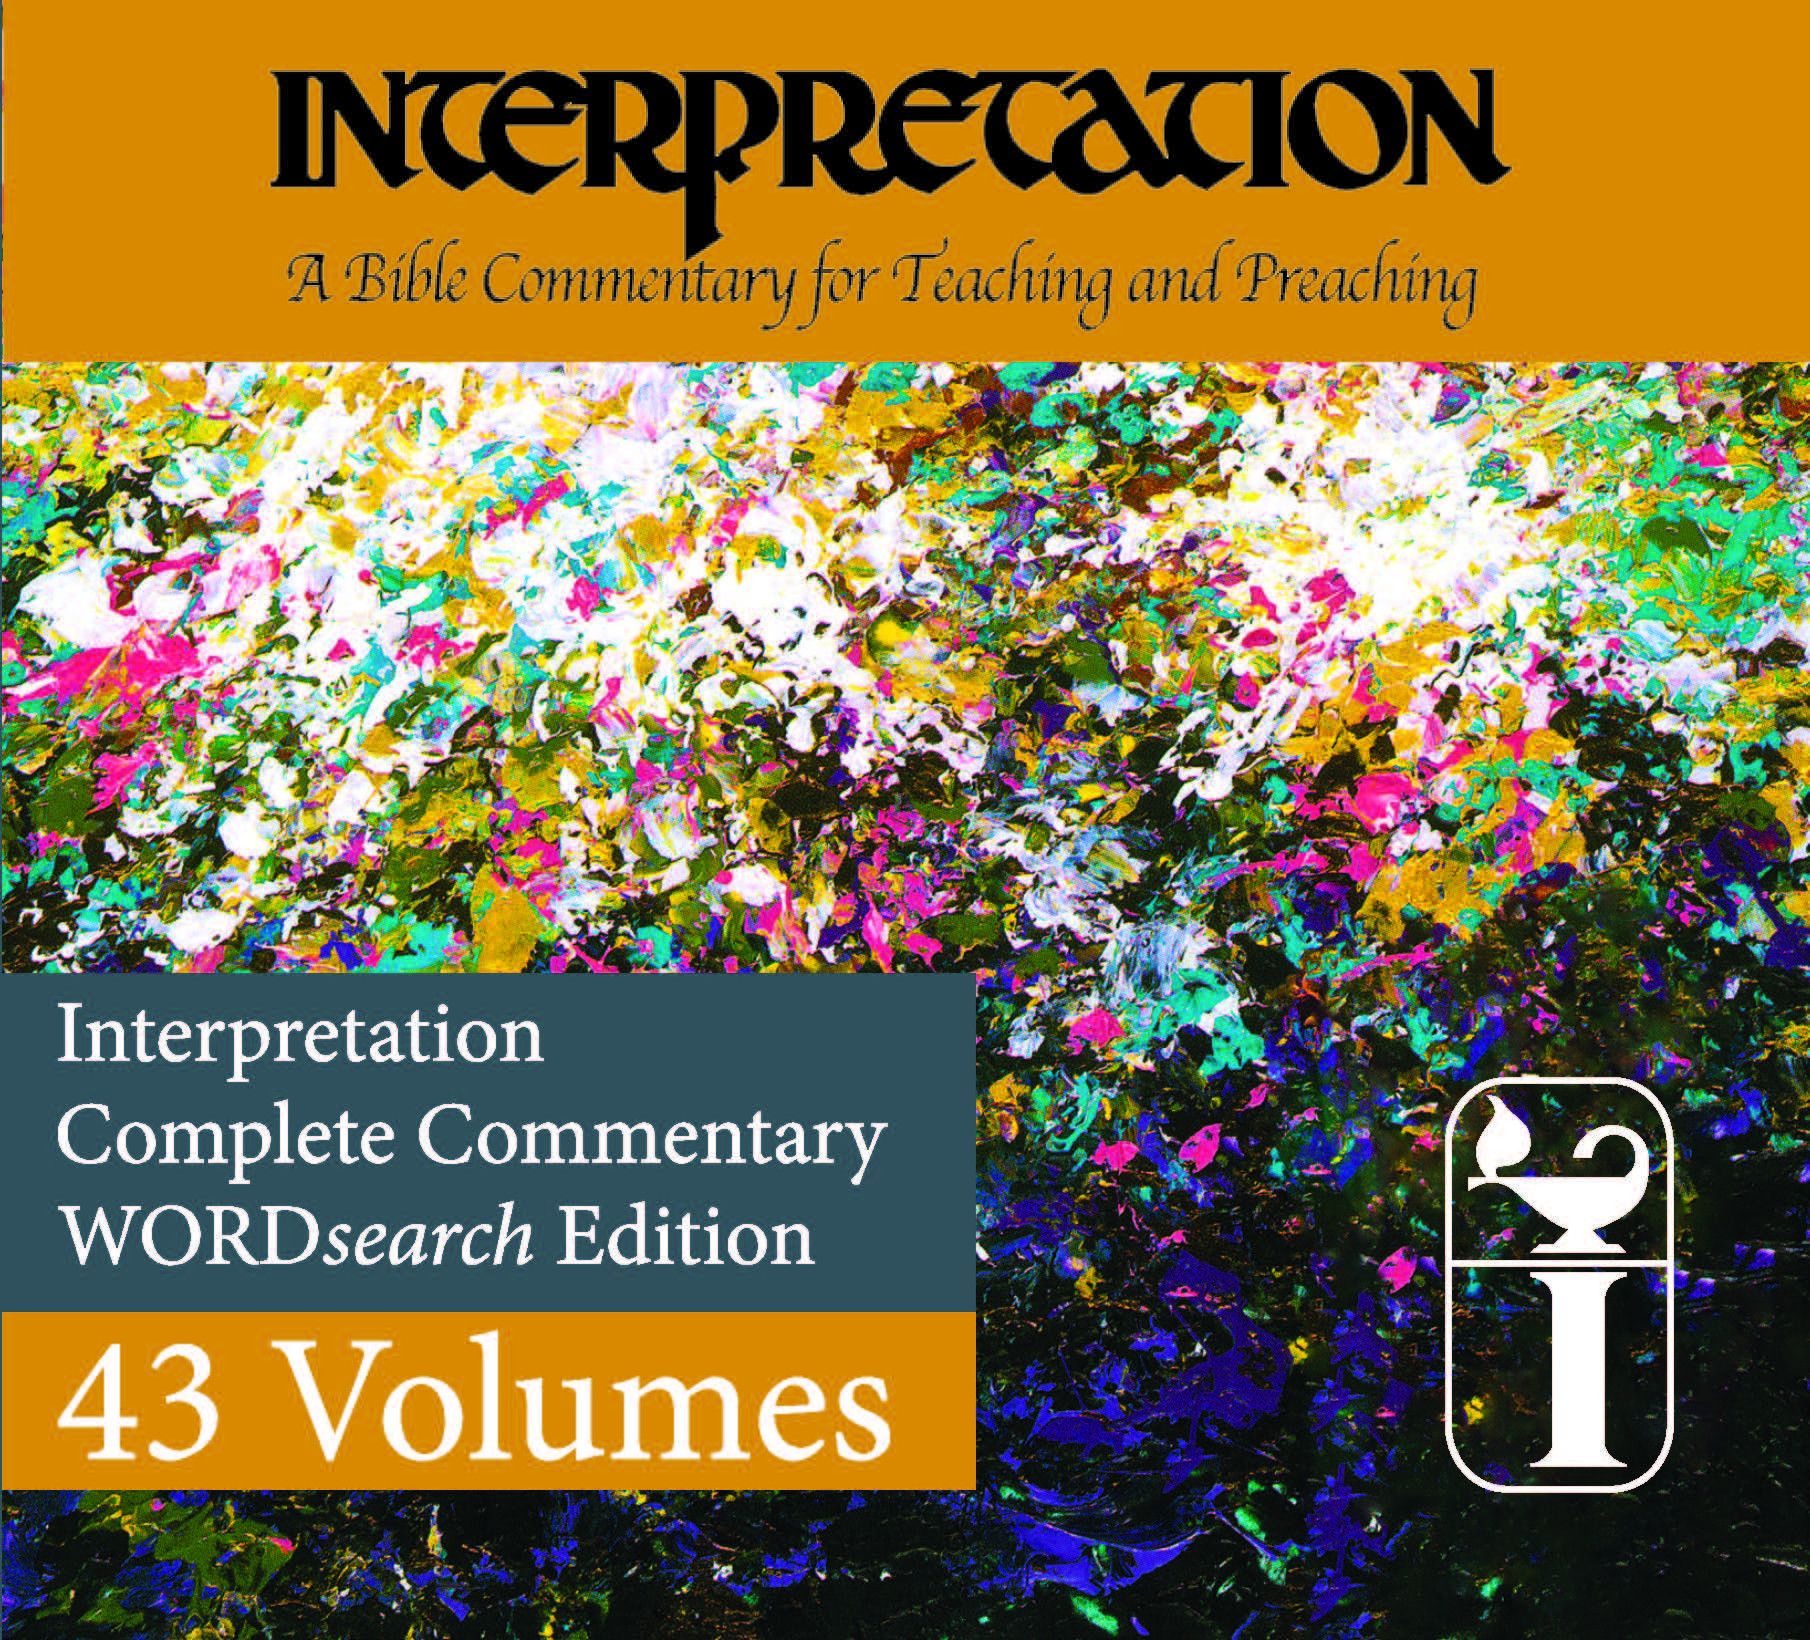 Interpretation Complete Commentary: WORDsearch Edition